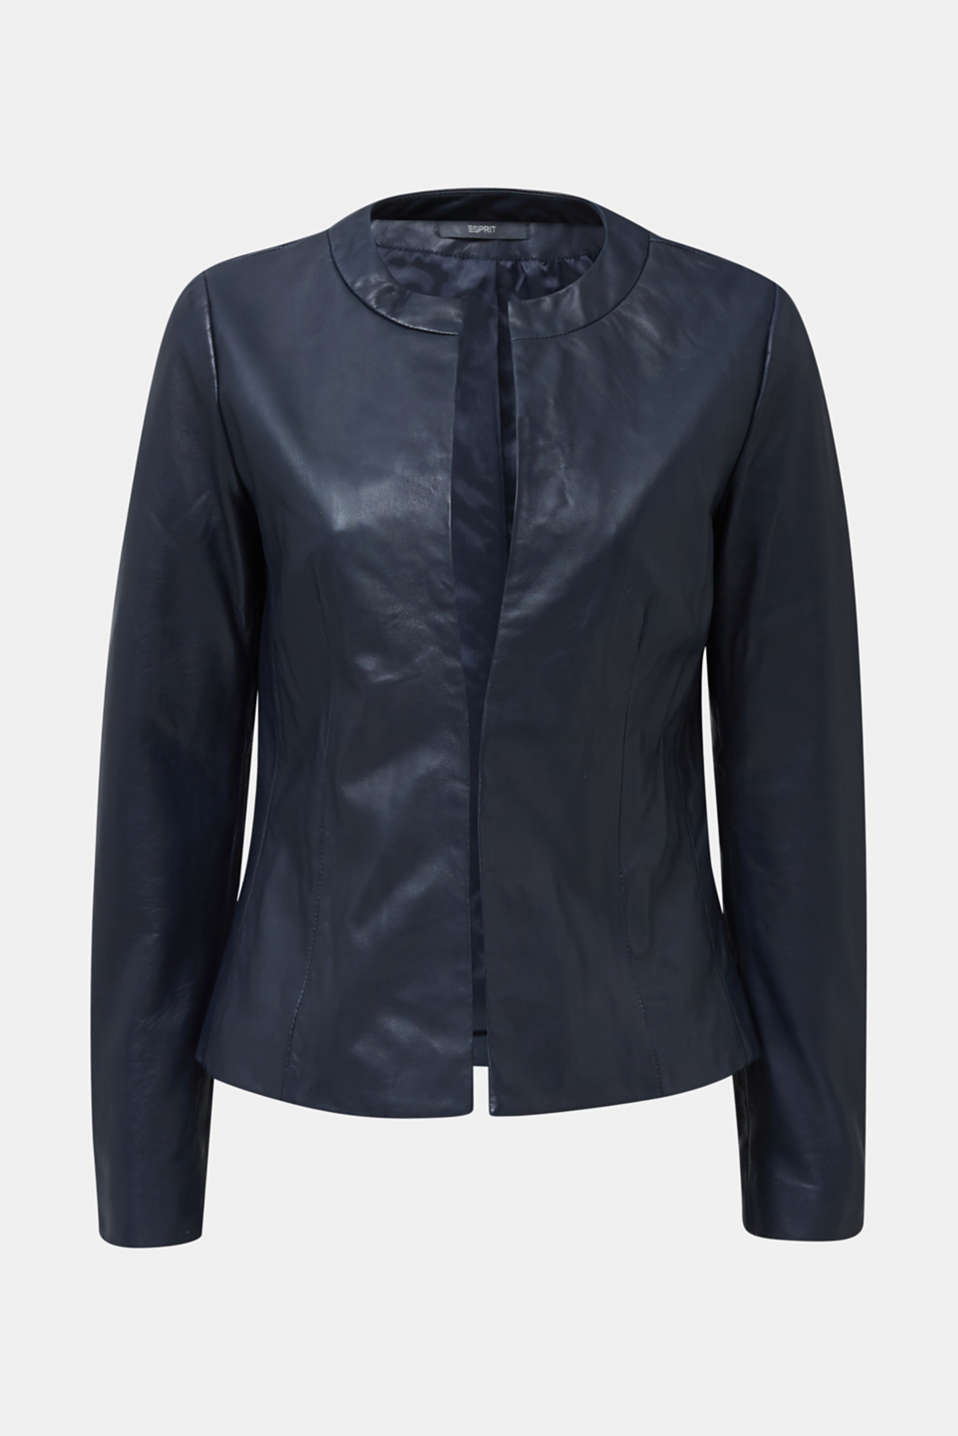 Feminine, fitted jacket made of leather, NAVY, detail image number 6